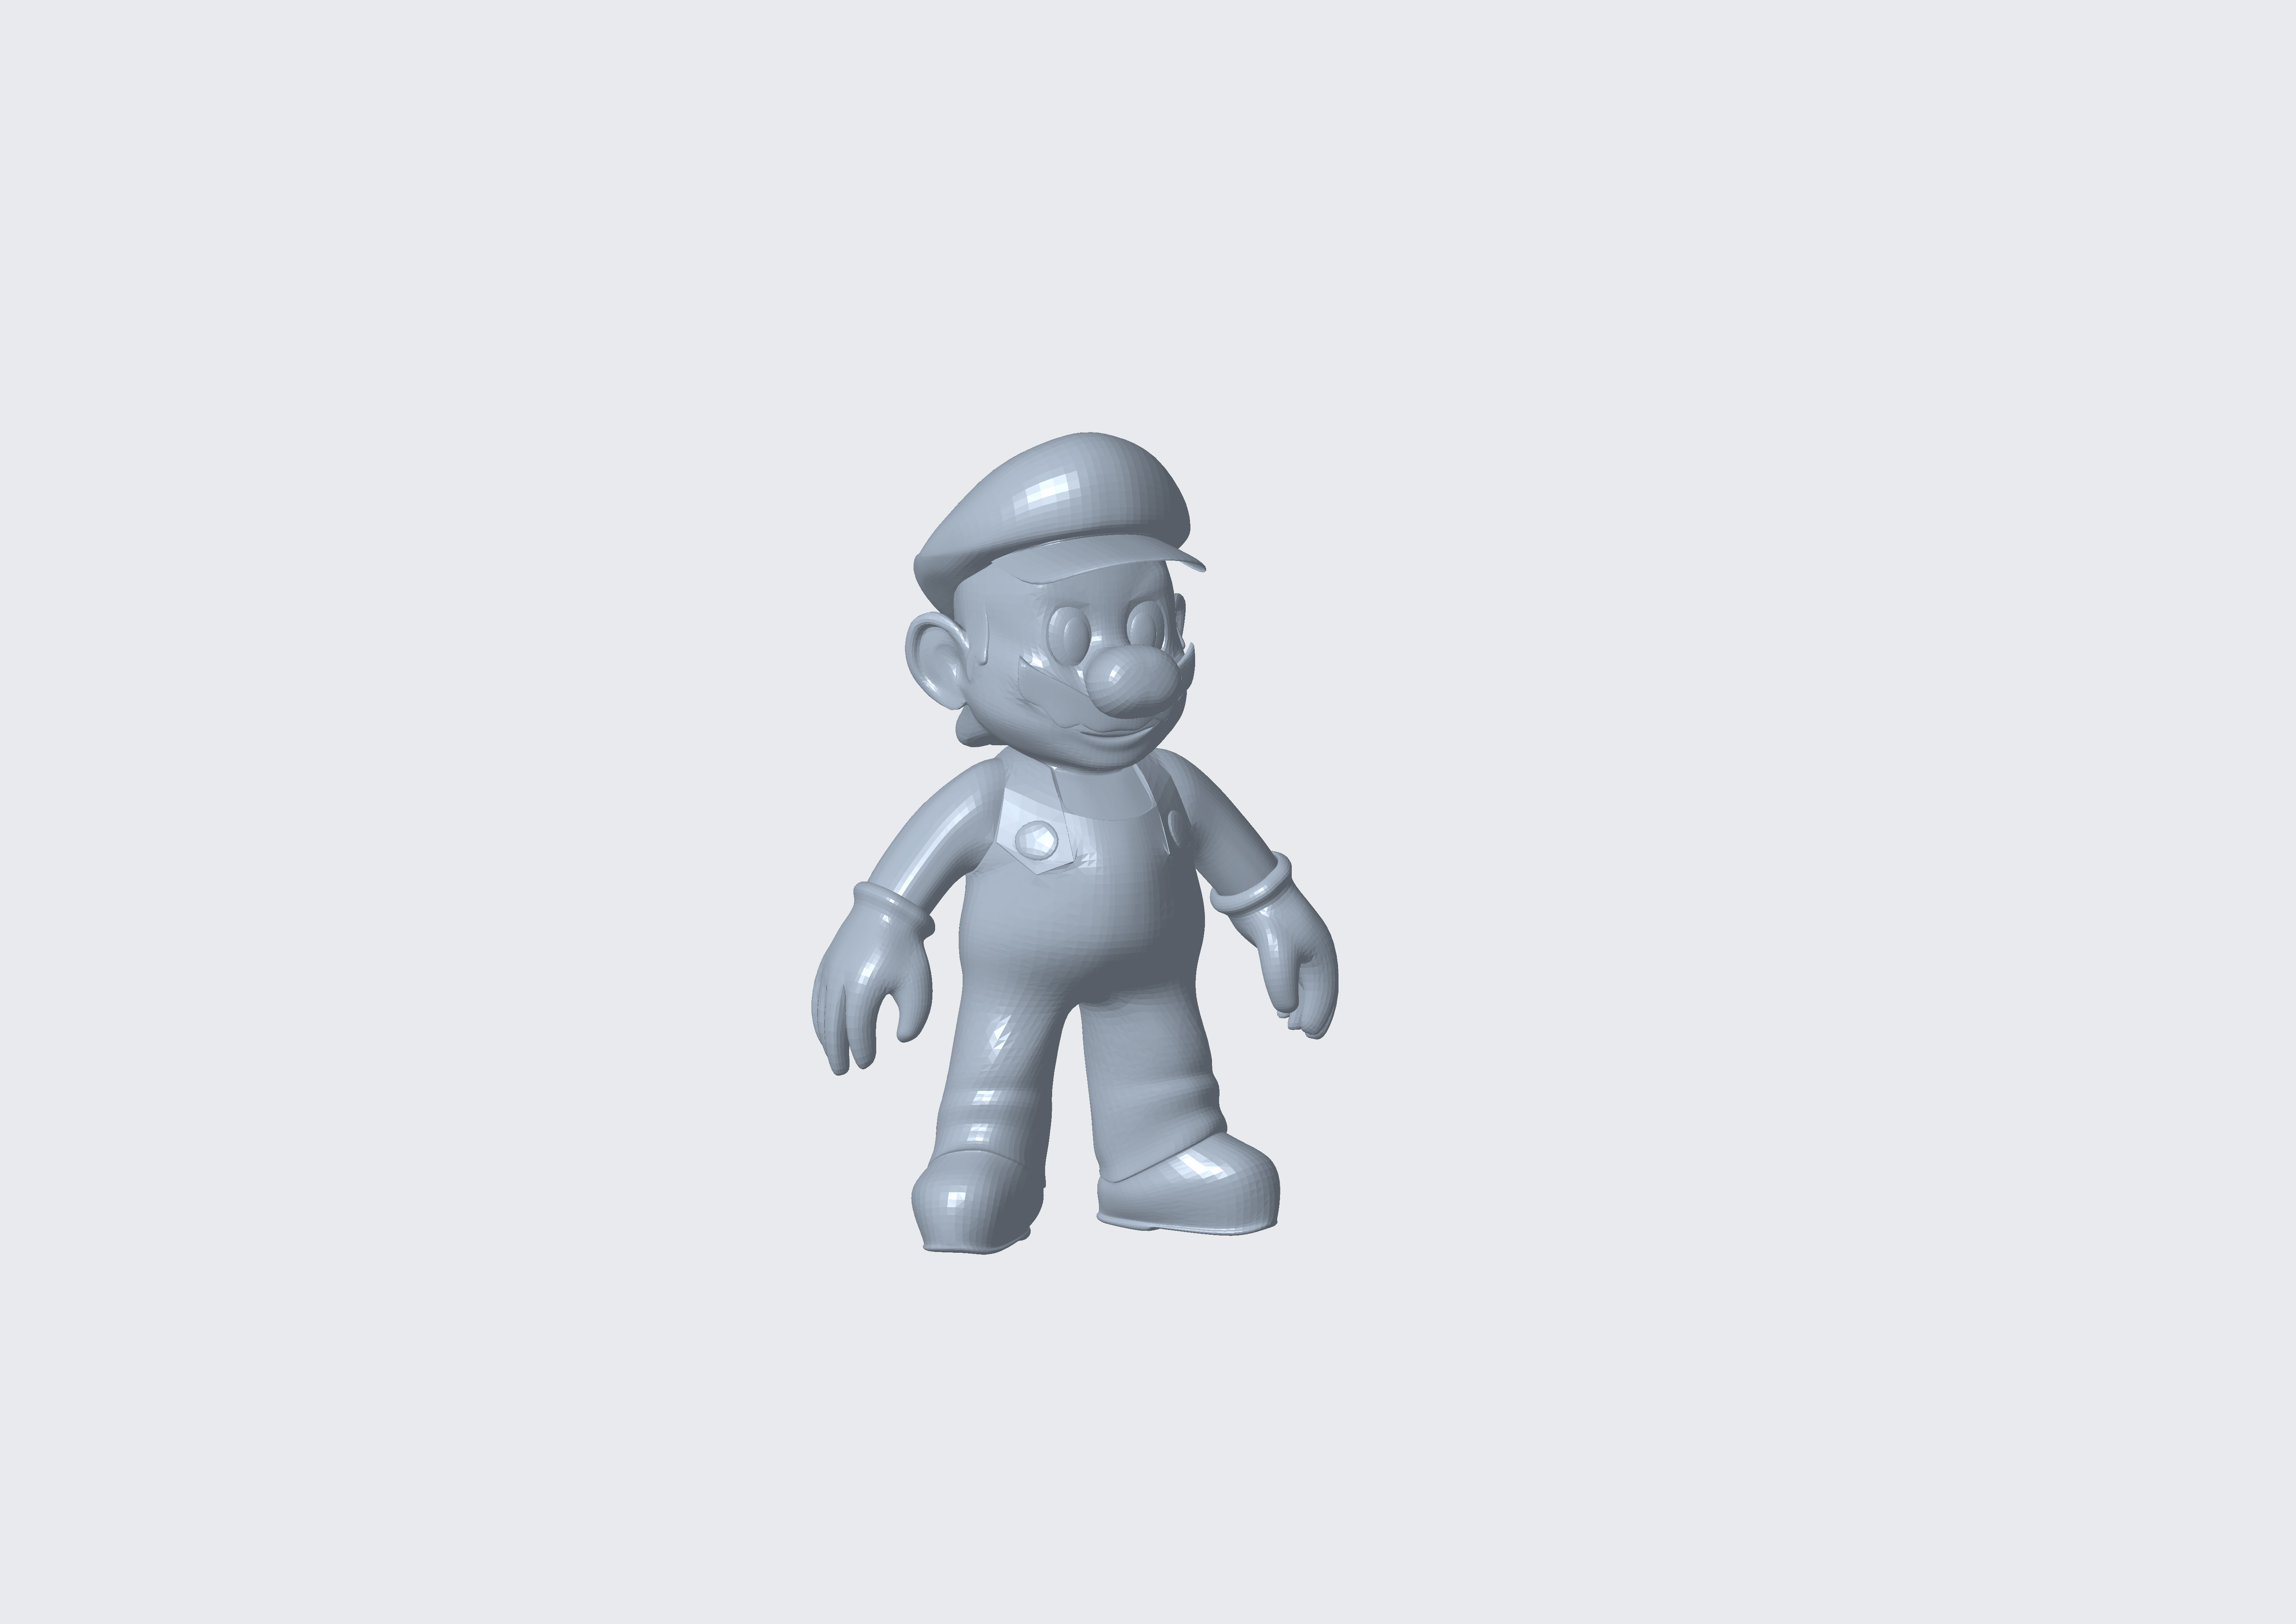 mario1.png Download free STL file mario.,, how to work on .stl file • 3D printer object, CADEN